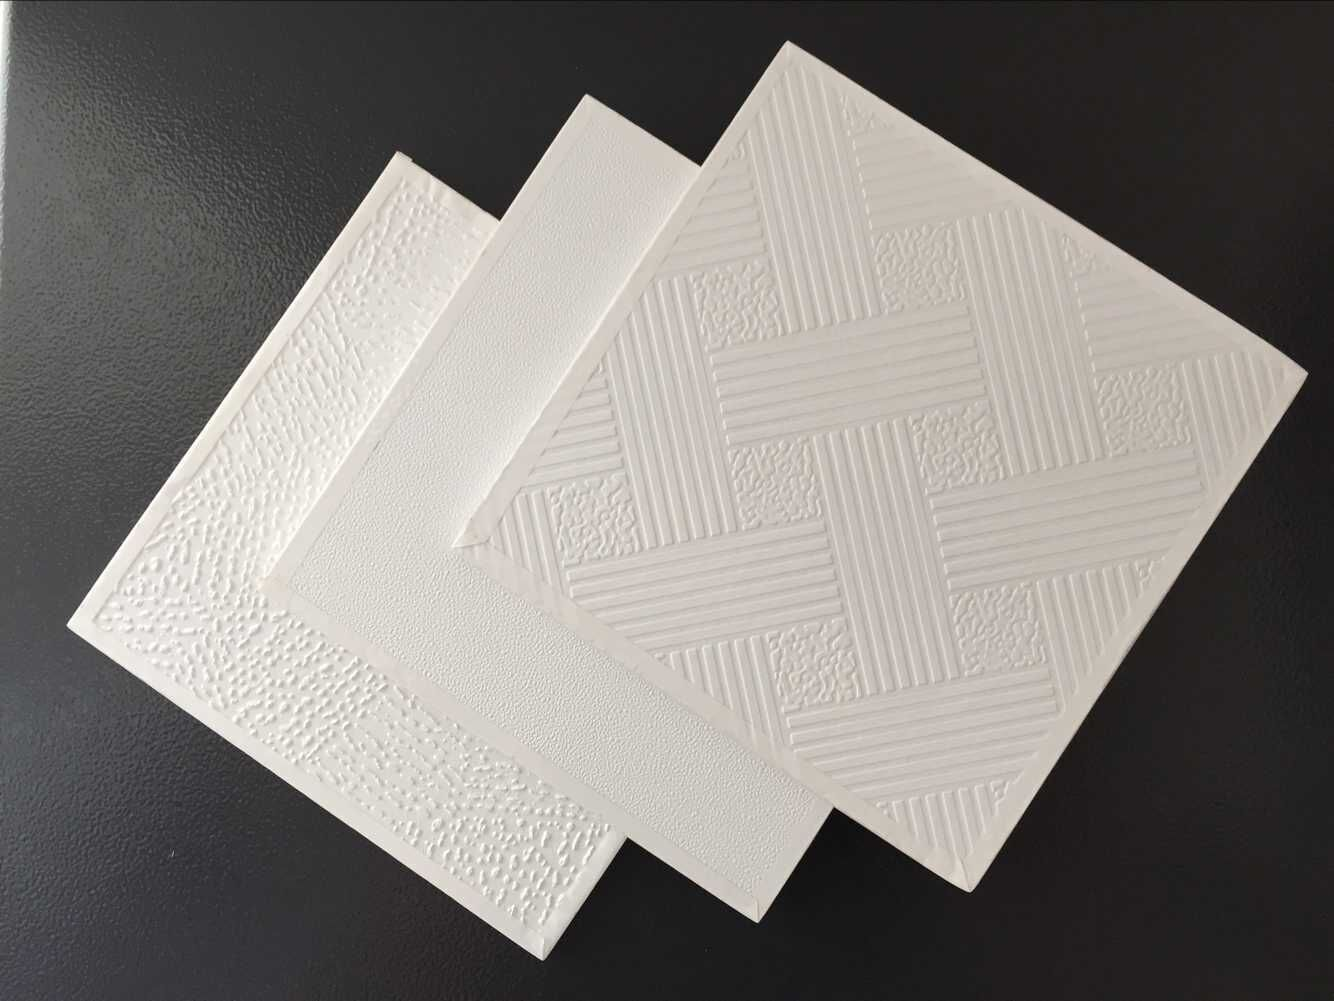 Pvc gypsum board acoustical board manufacturer in china by Gypsum board images